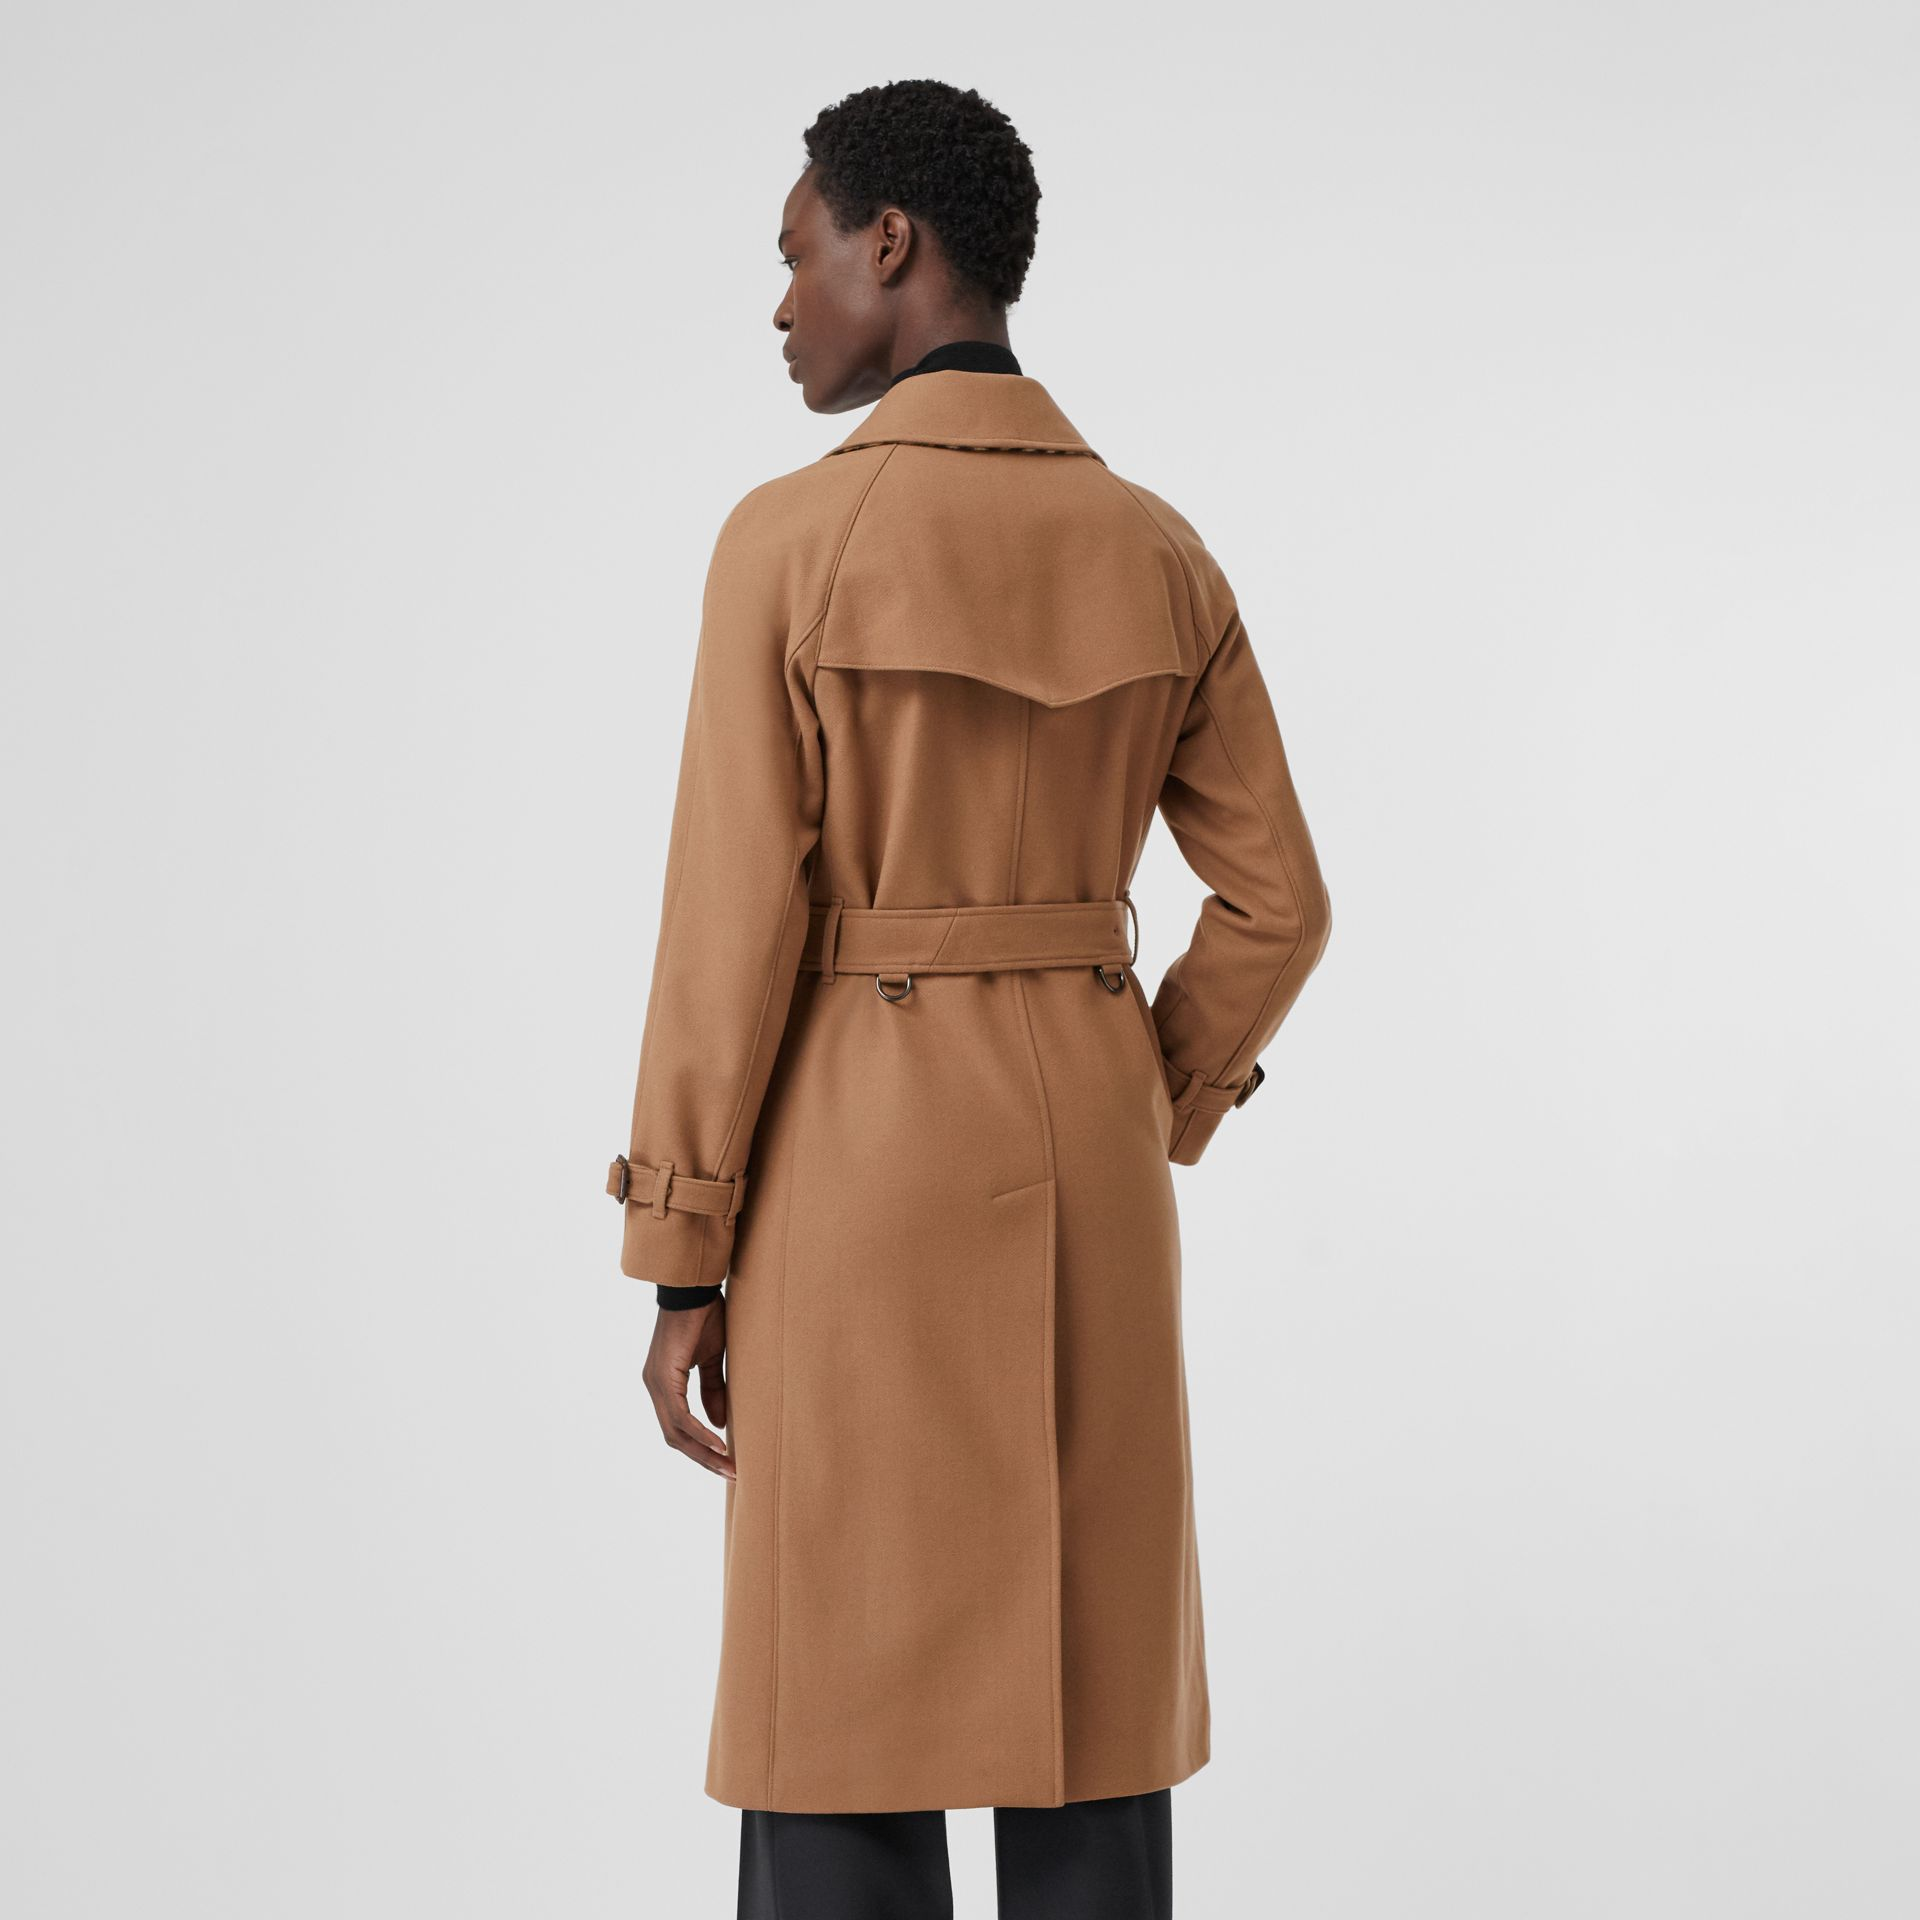 Herringbone Wool Cashmere Blend Trench Coat in Camel - Women | Burberry United Kingdom - gallery image 2